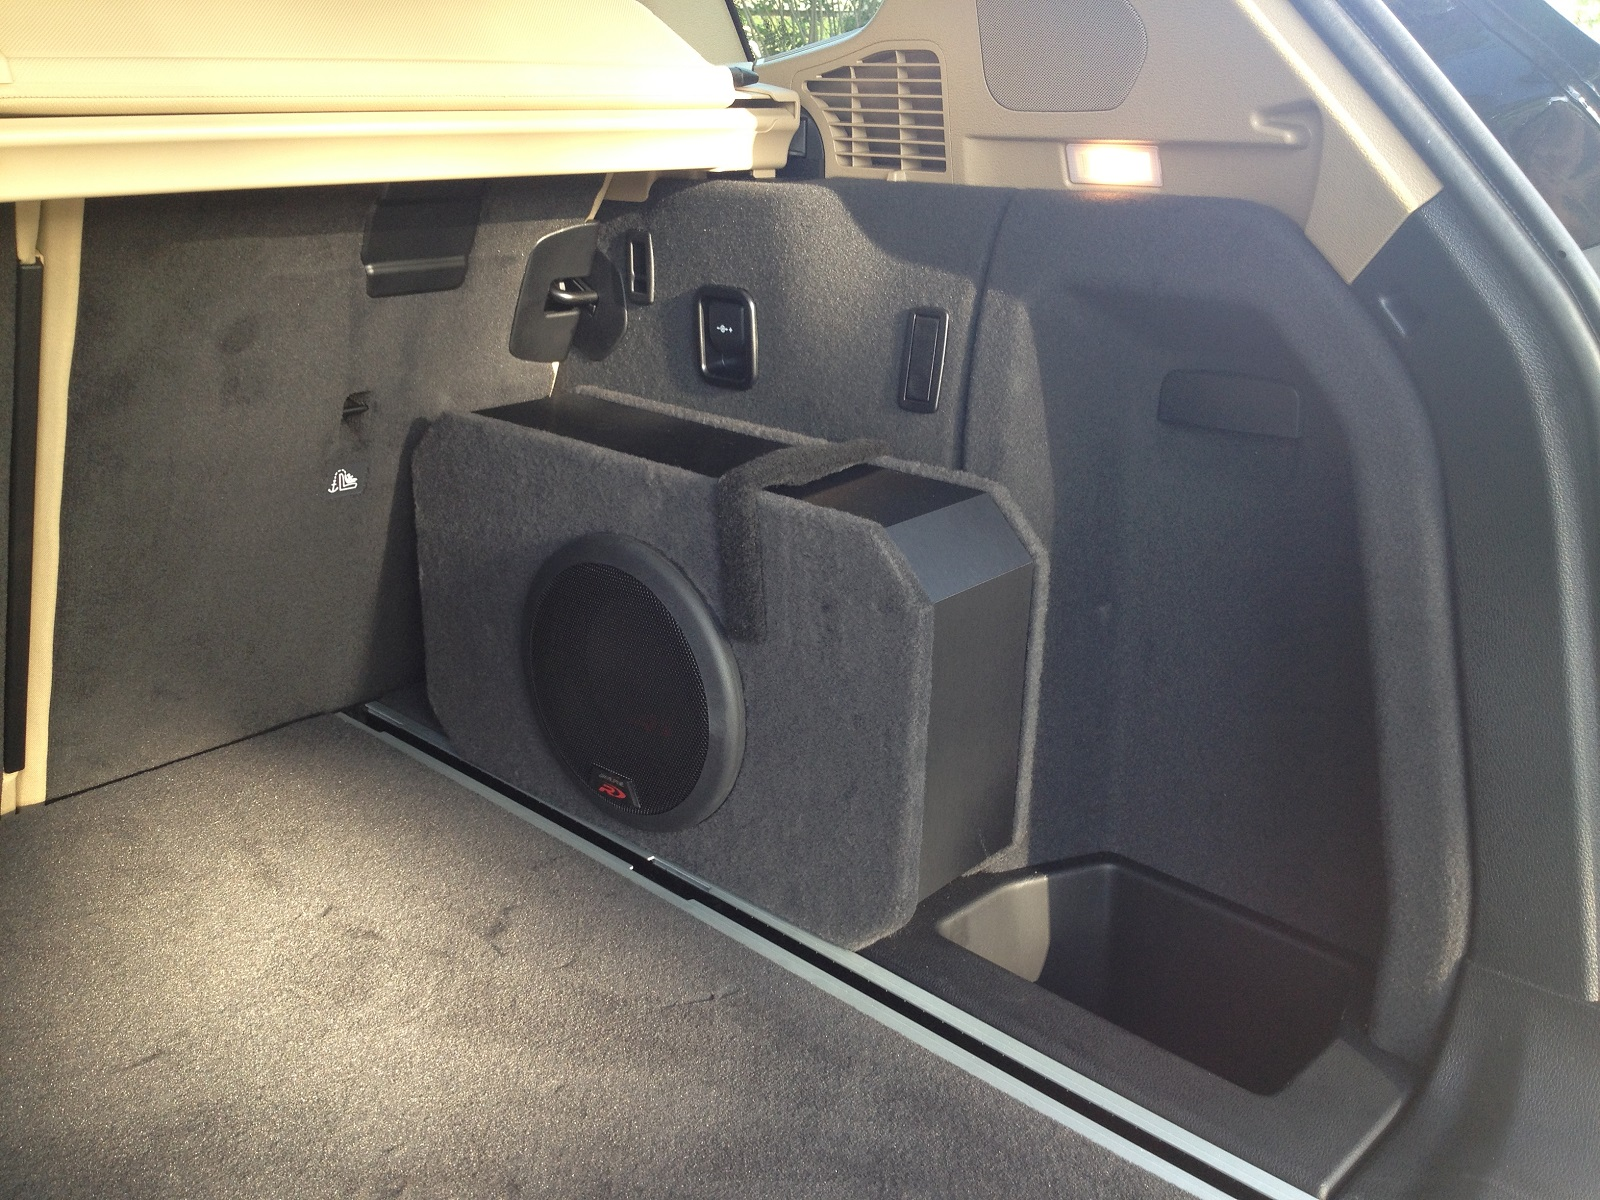 New Subwoofer Some Battery Questions